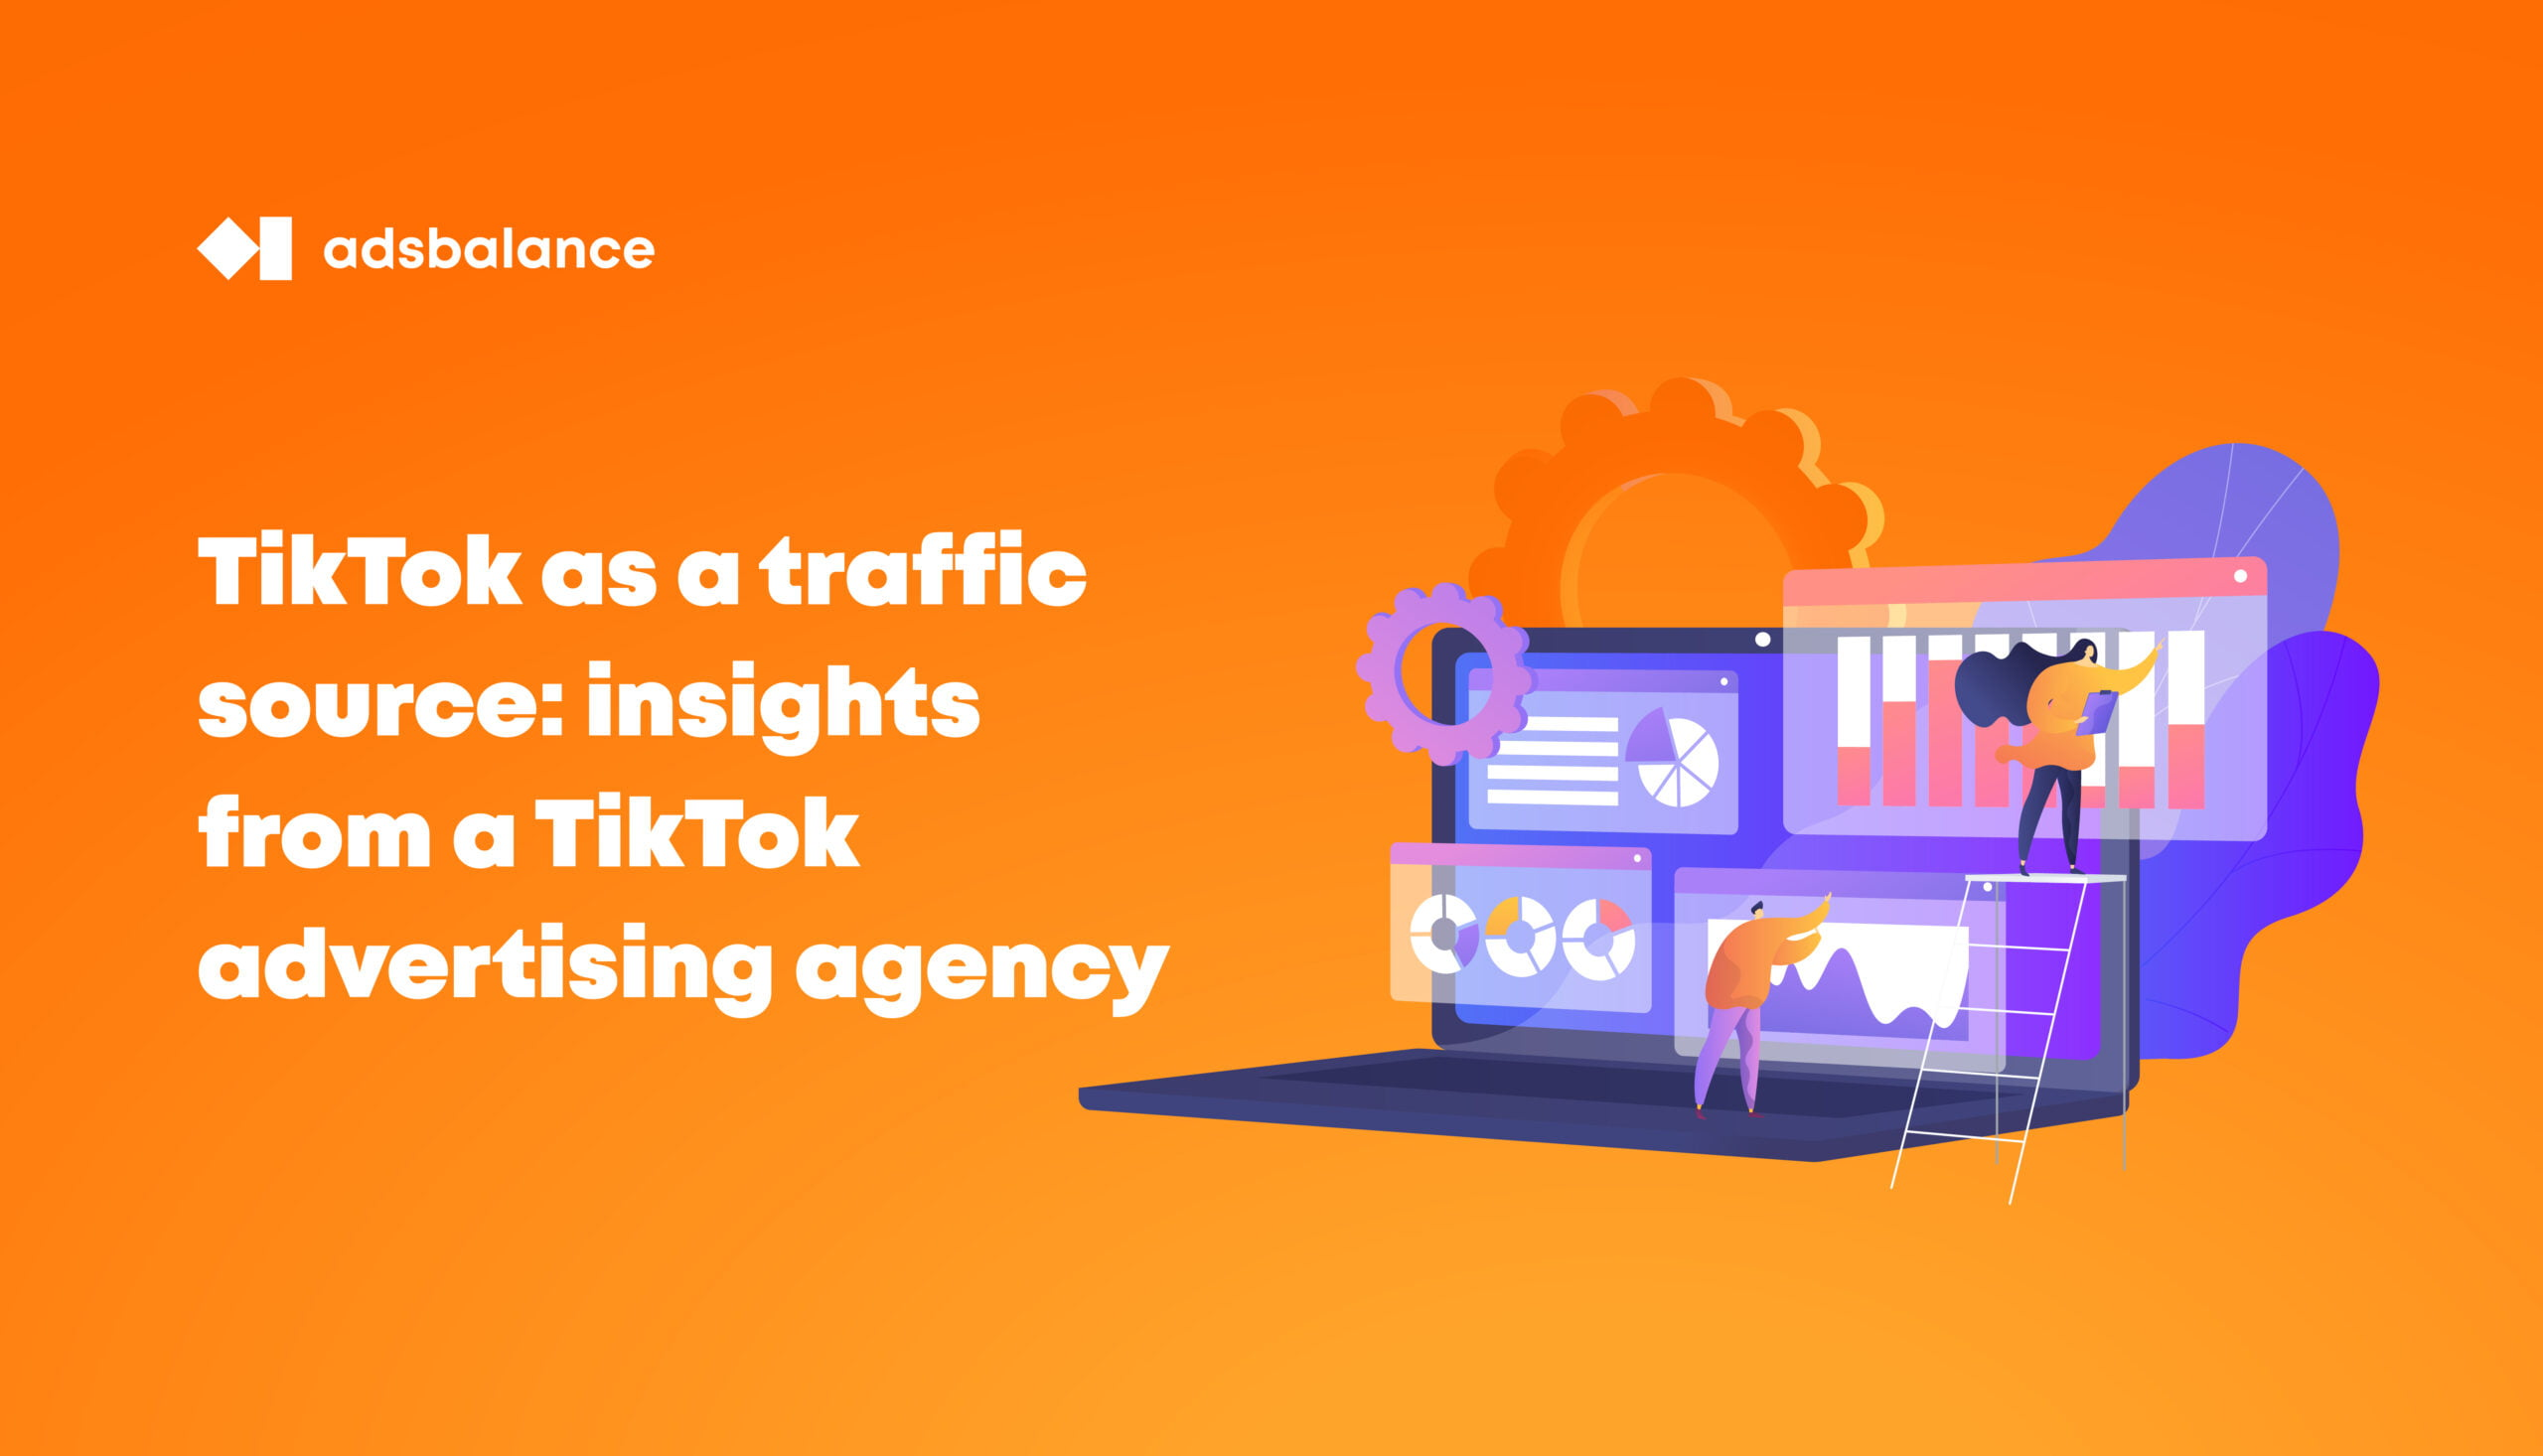 TikTok as a traffic source: insights from a TikTok advertising agency